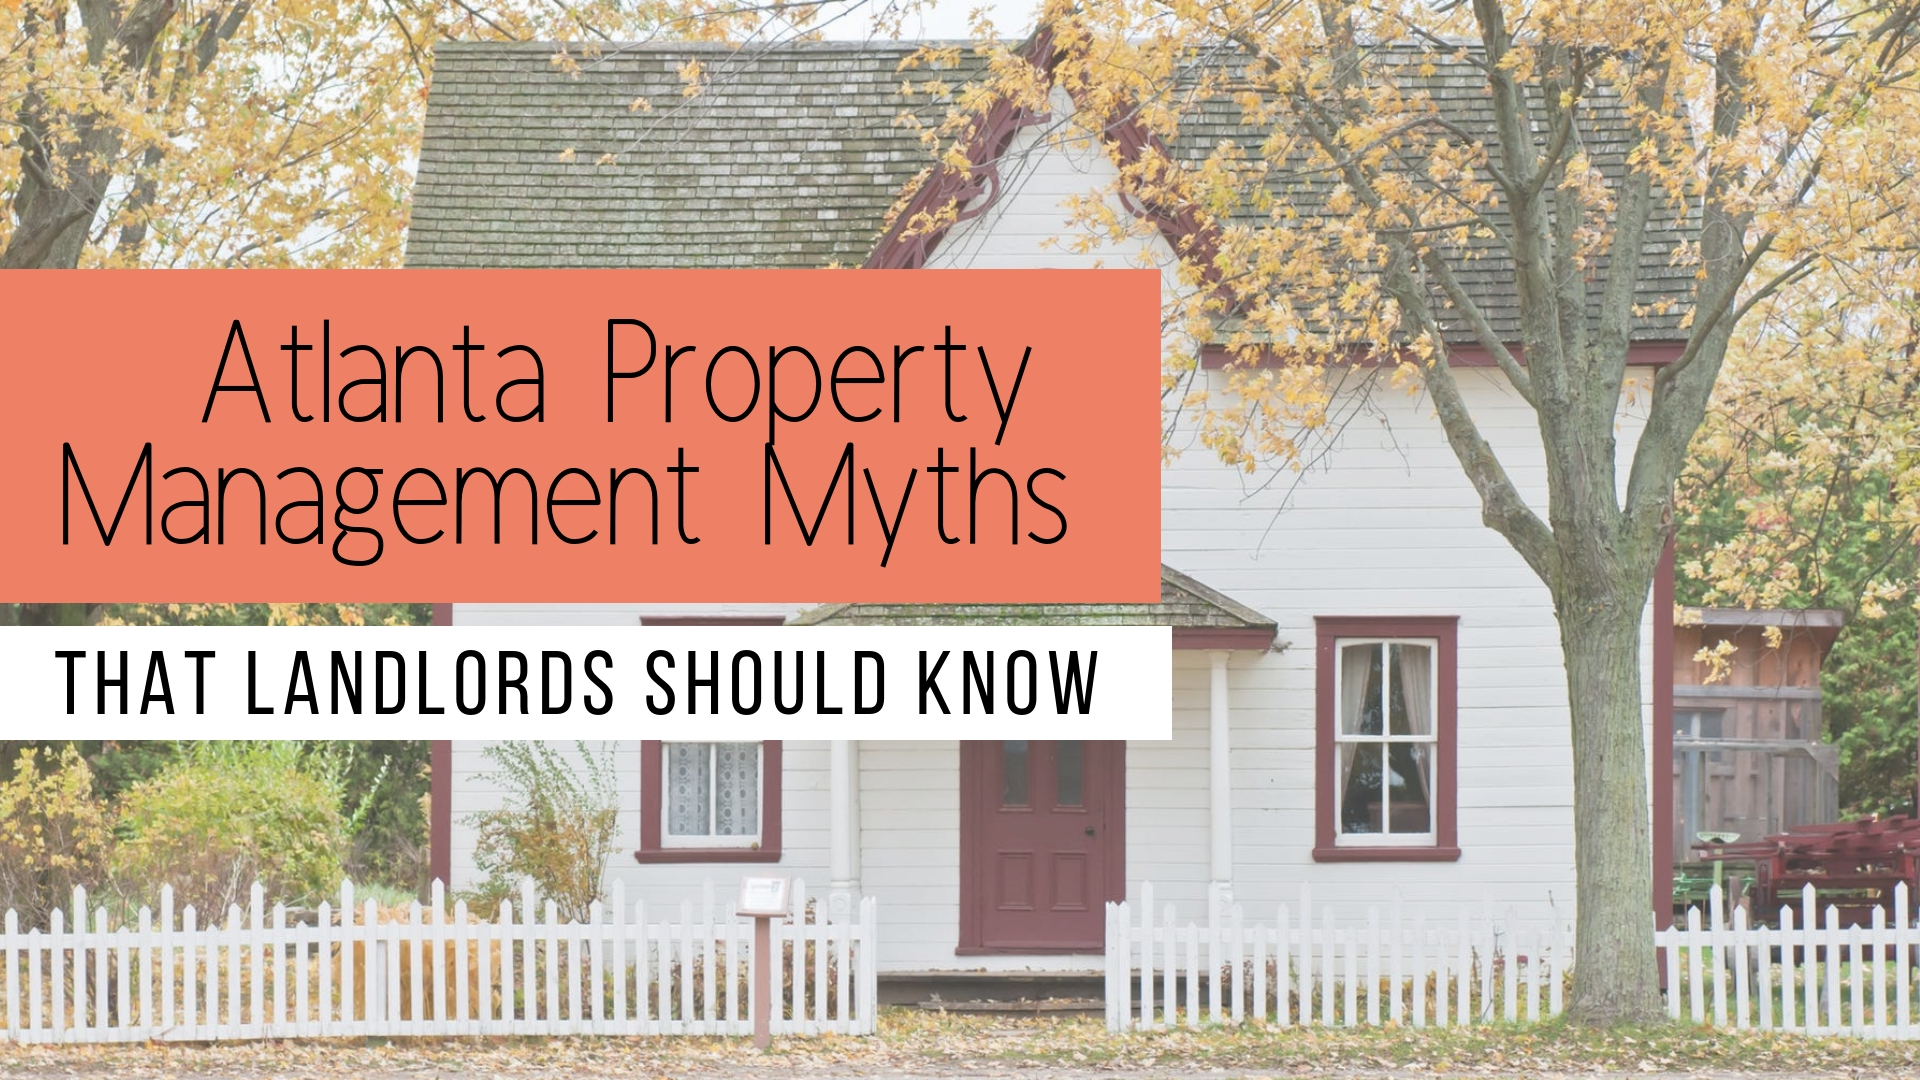 atlanta-property-management-myths-that-landlords-should-know